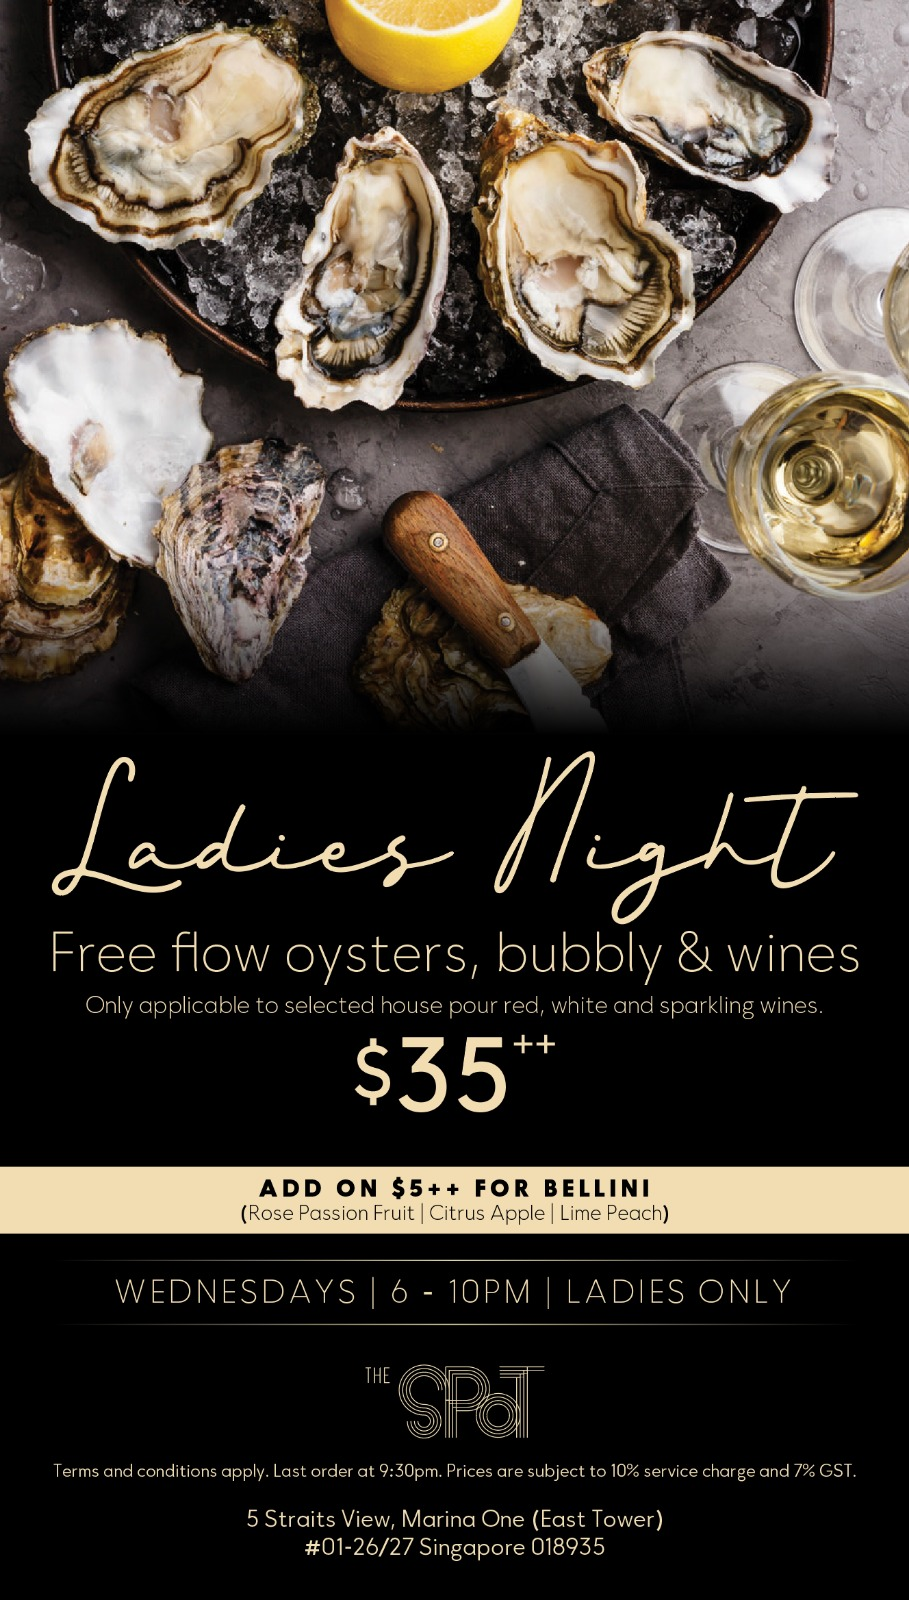 Ladies Night Promotion in Singapore with free-flow oysters and alcohol